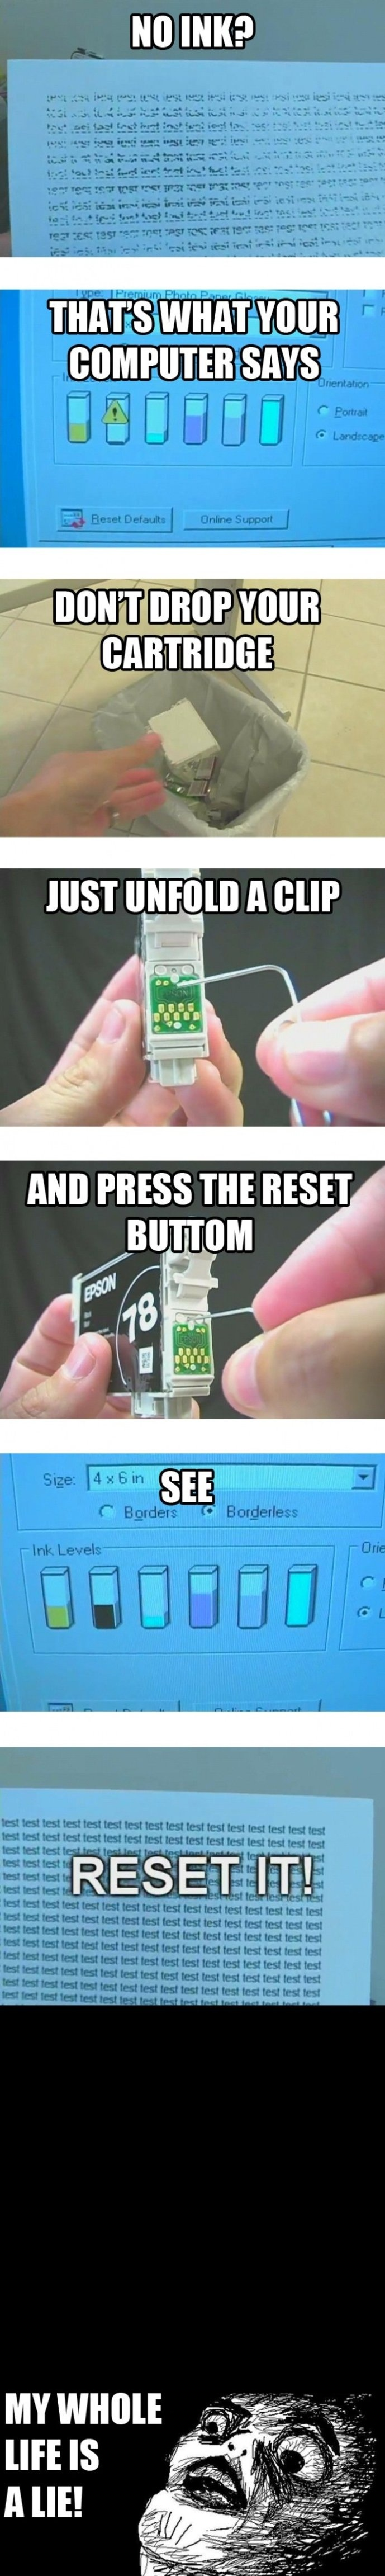 reset your ink cartridge to save on replacing it